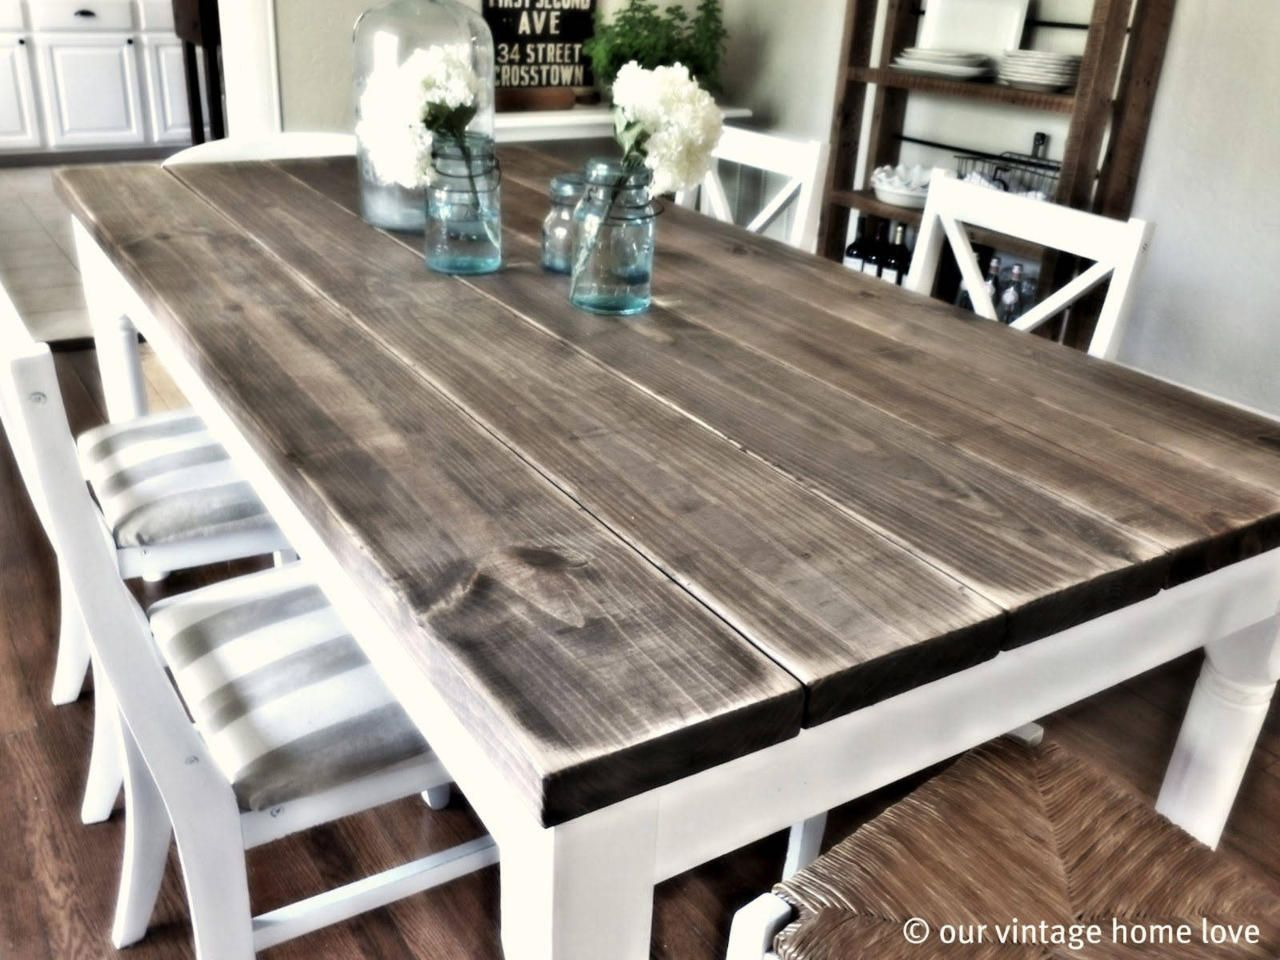 vintage home love  Dining Room Table Tutorial. Best 25  Table and chairs ideas on Pinterest   Kitchen chairs